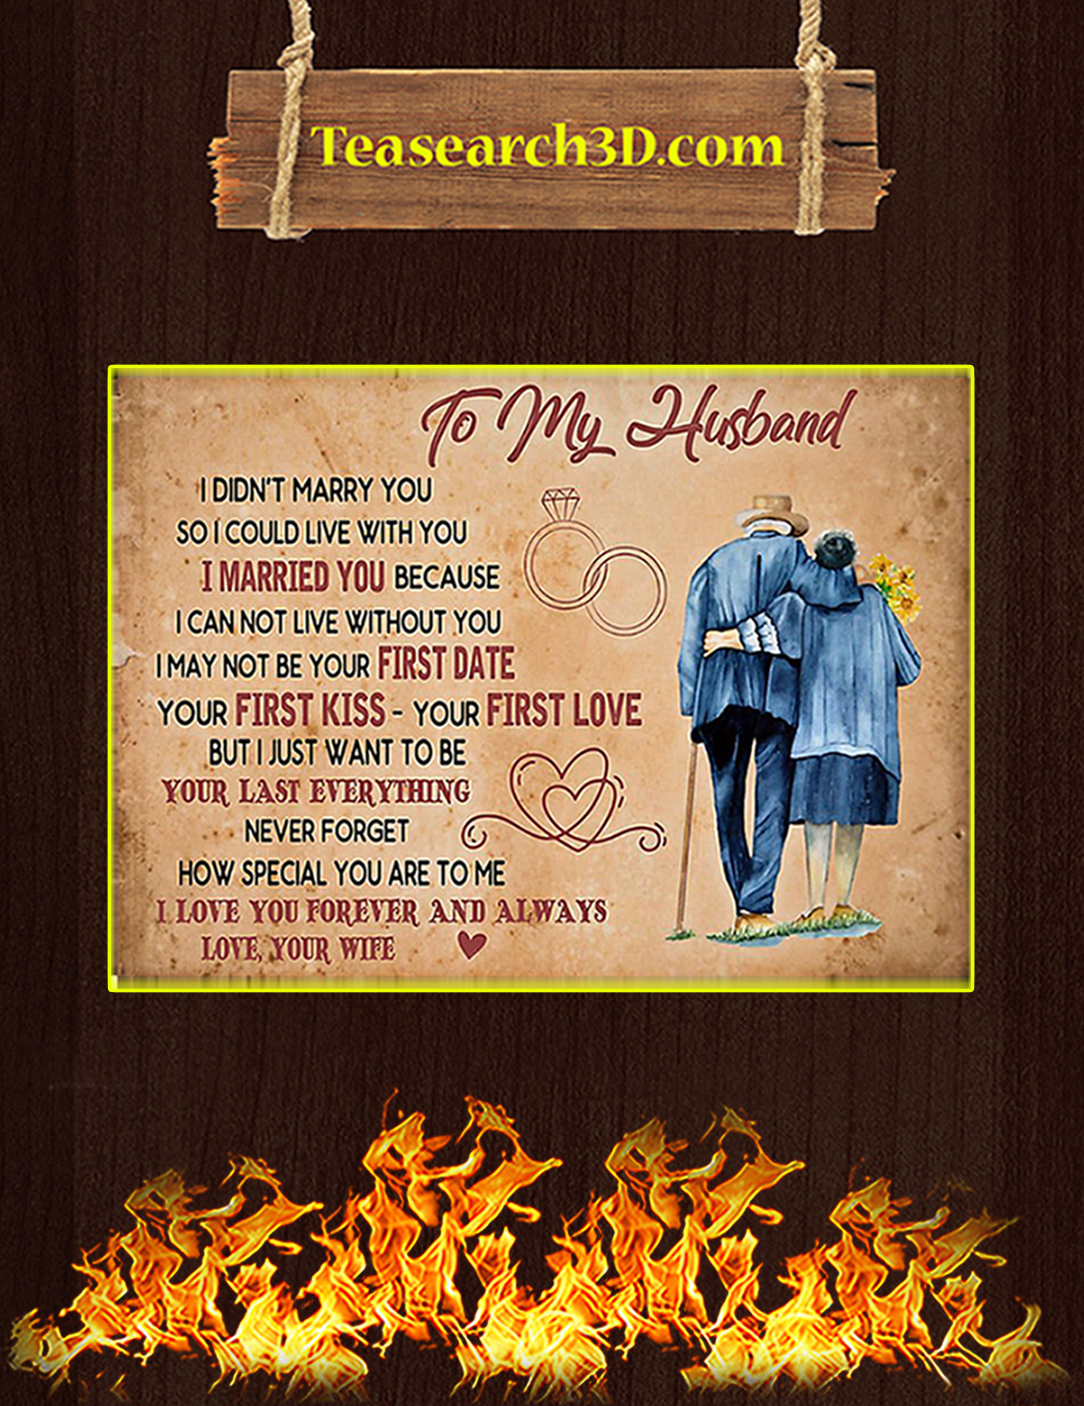 To my husband I didn't marry you poster A2